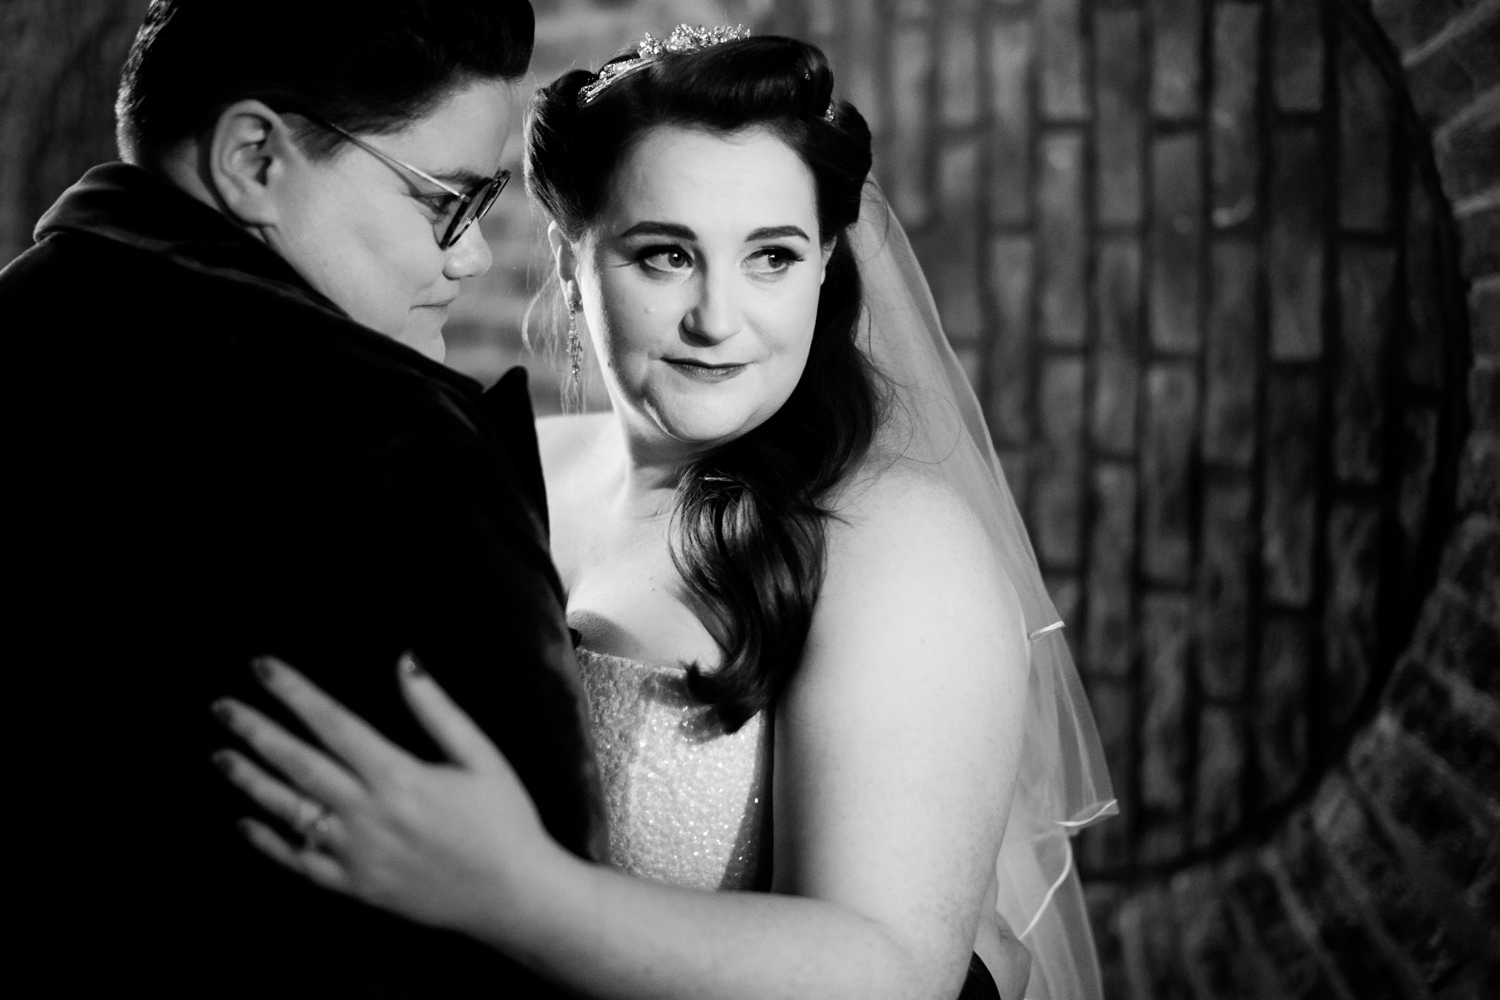 Elisha-Clarke-Photography-Dublin-City-Wedding_00360.jpg